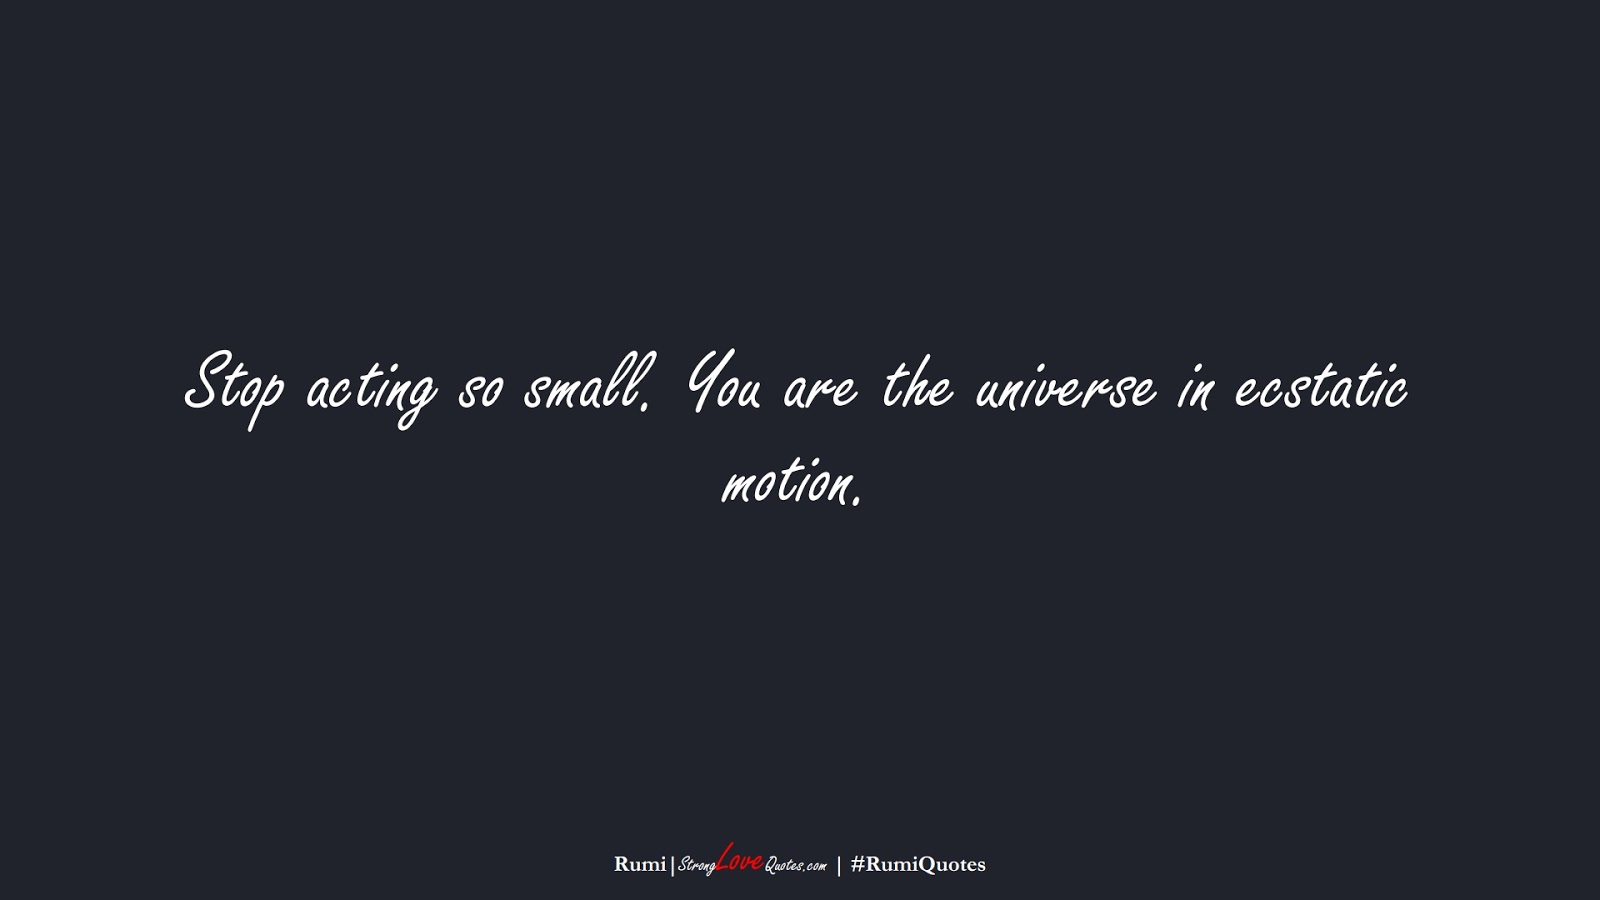 Stop acting so small. You are the universe in ecstatic motion. (Rumi);  #RumiQuotes